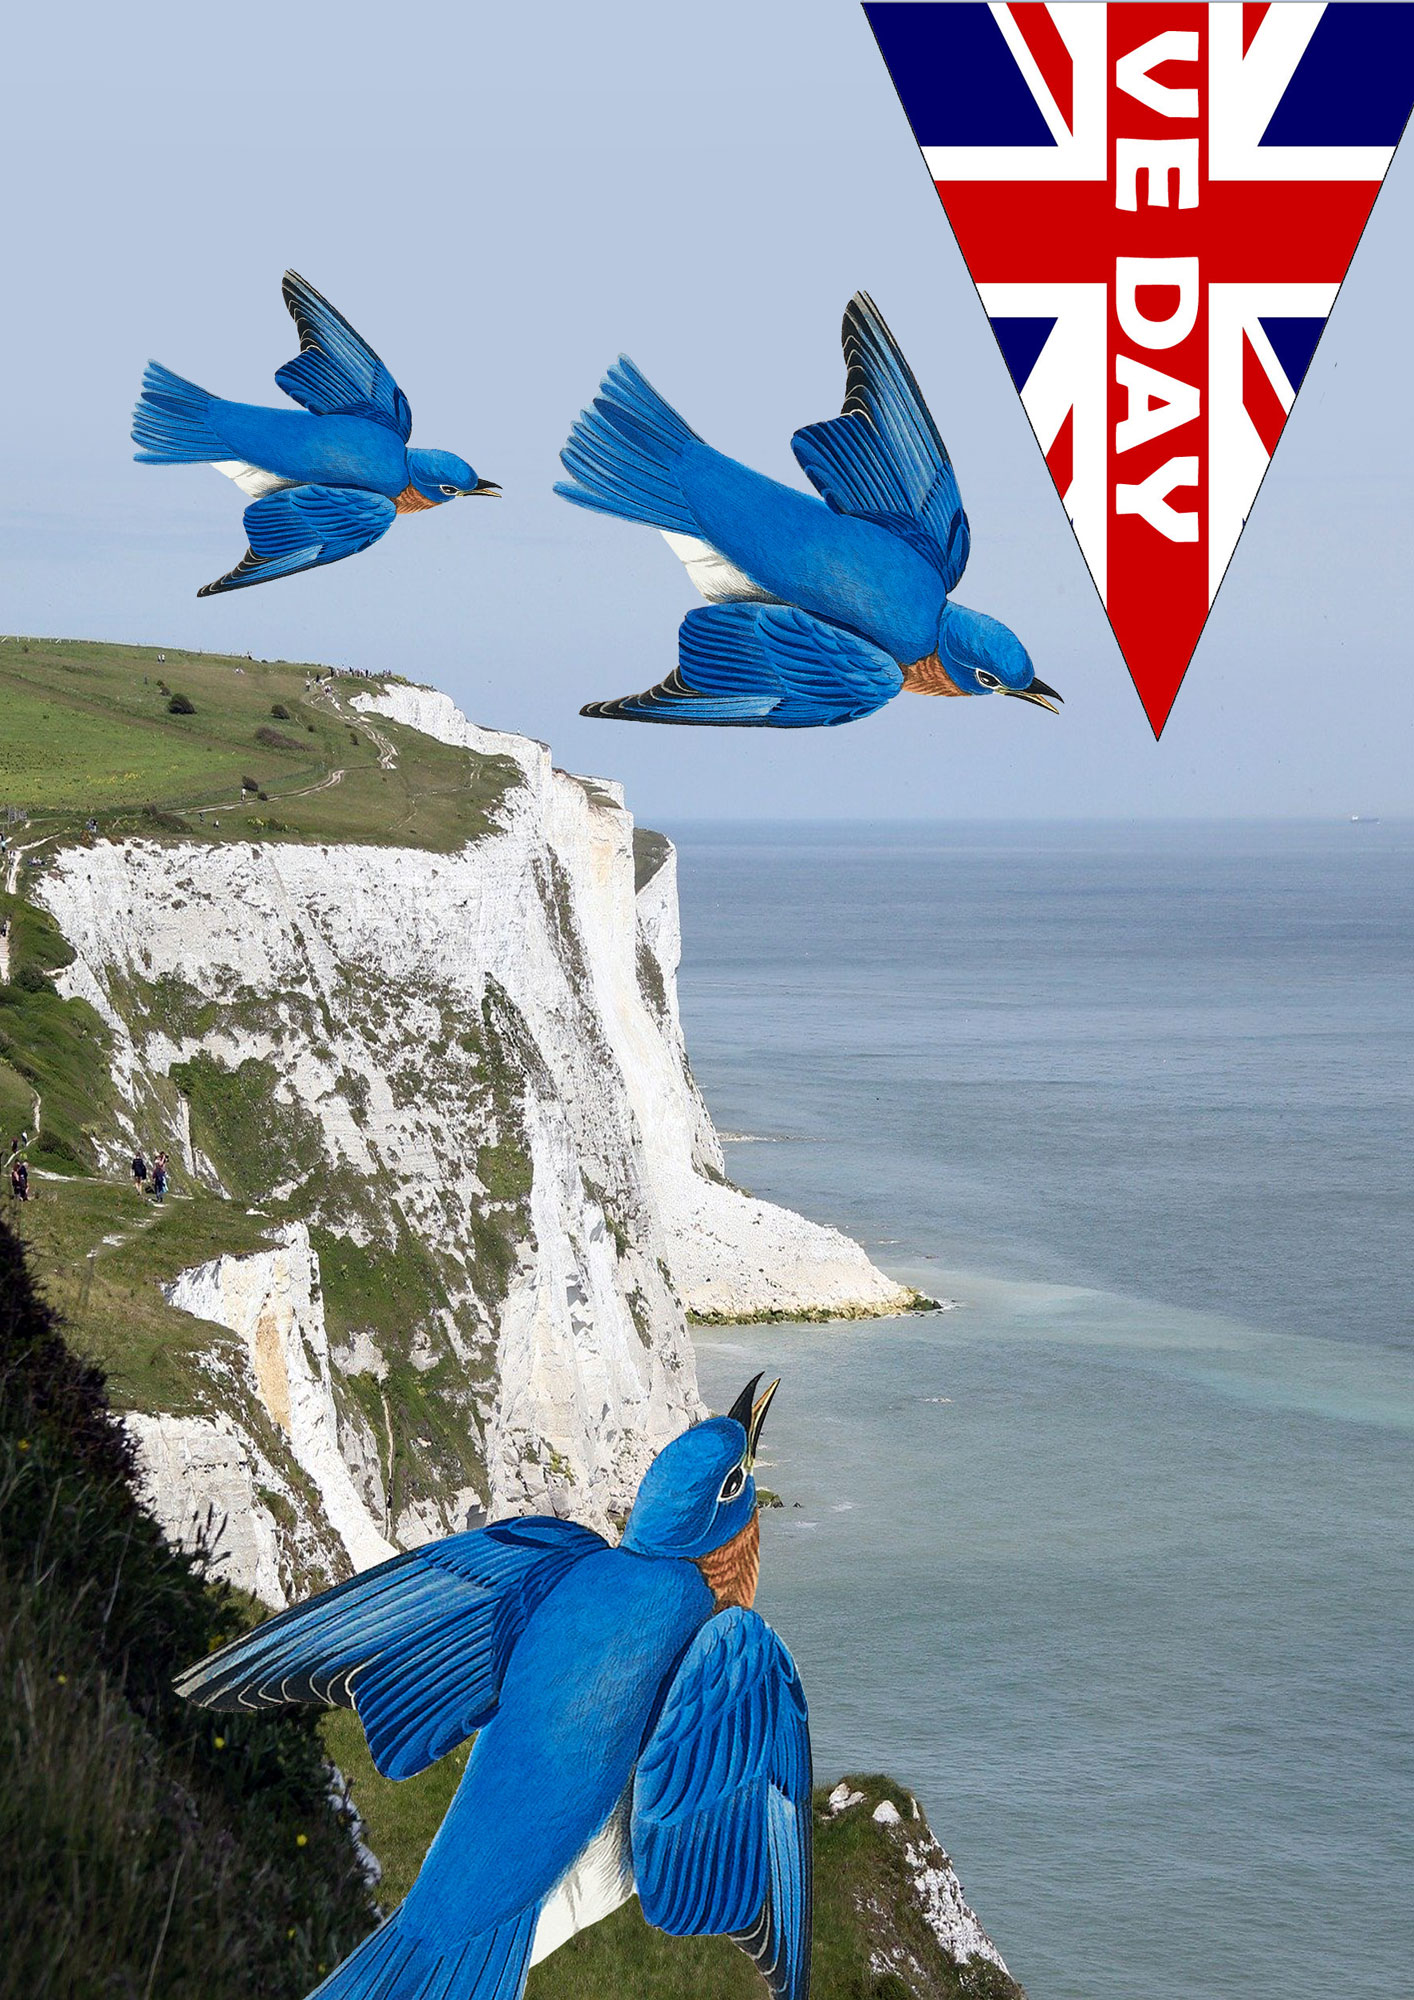 Full-length poster for VE Day showing a gorgeous picture of bluebirds flying over the white cliffs of Dover, as in the song.